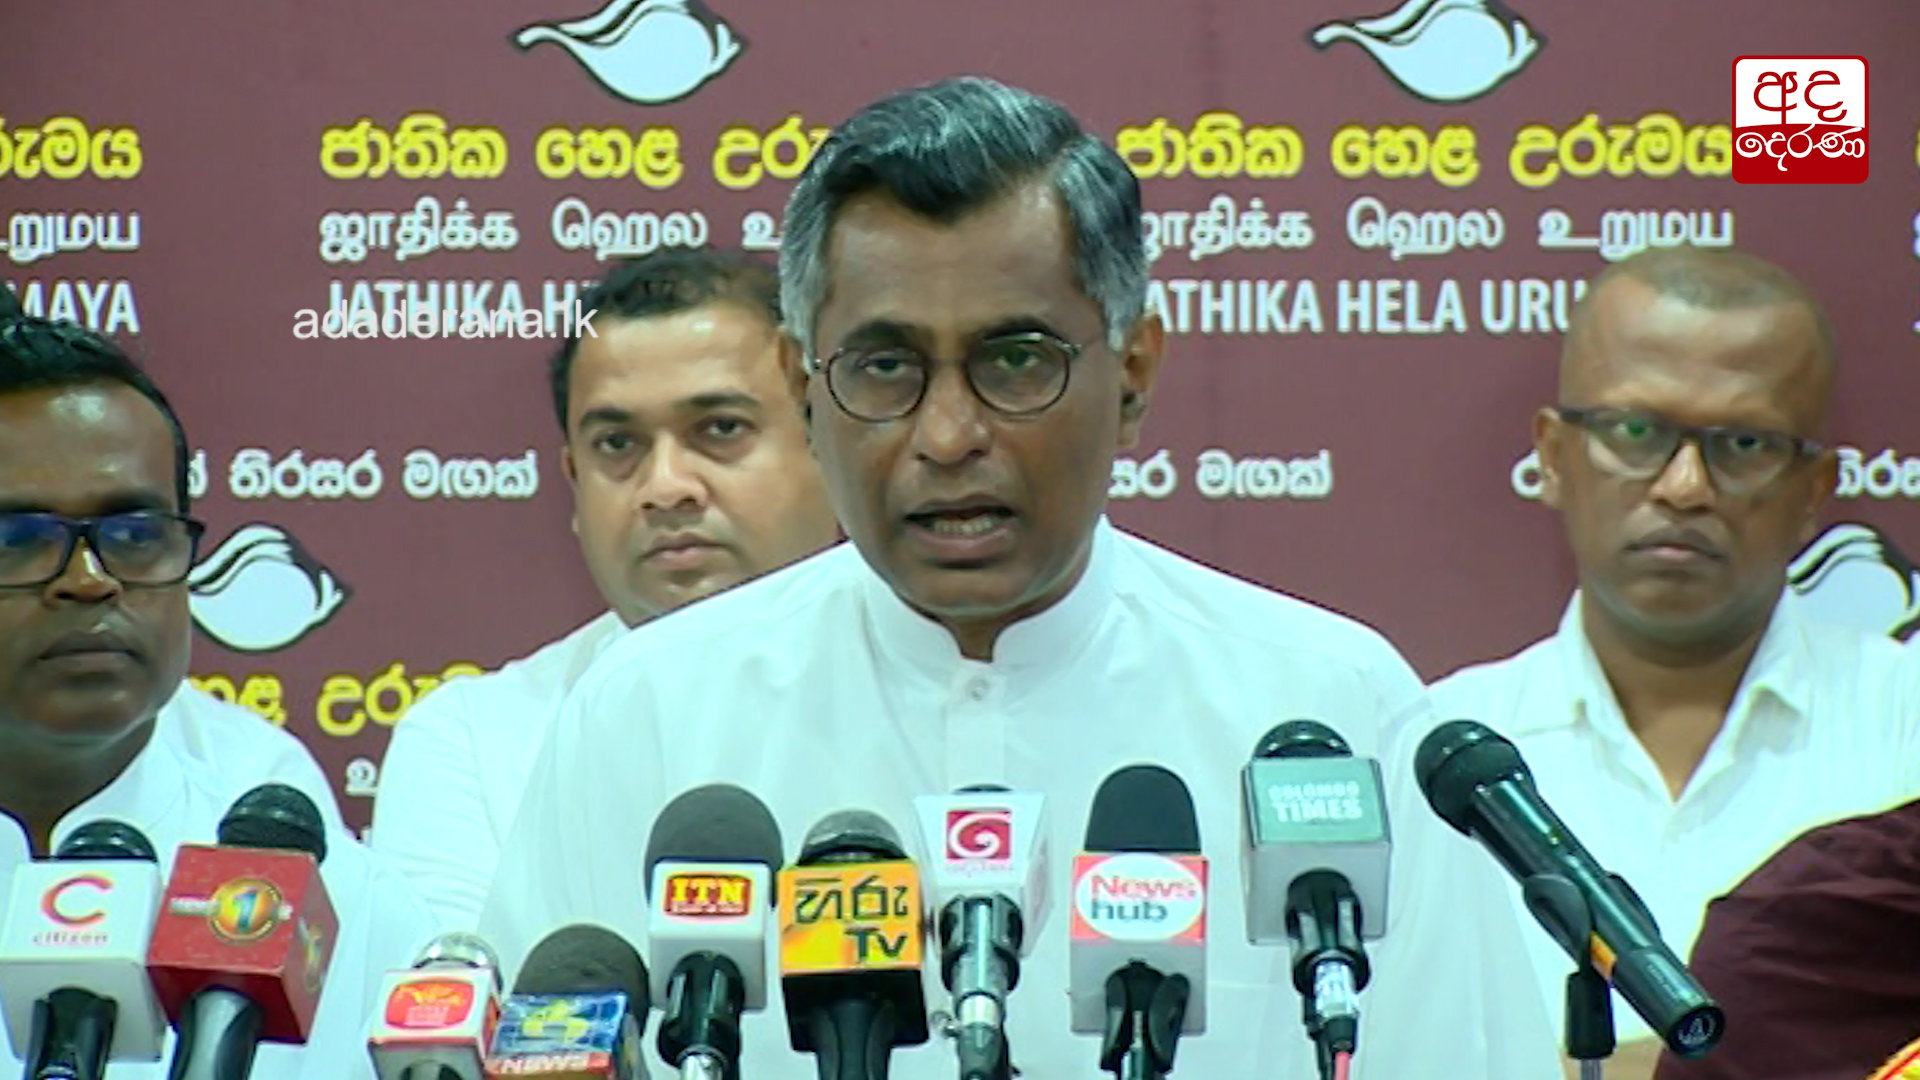 JVP candidiate cannot save country from danger - Patali